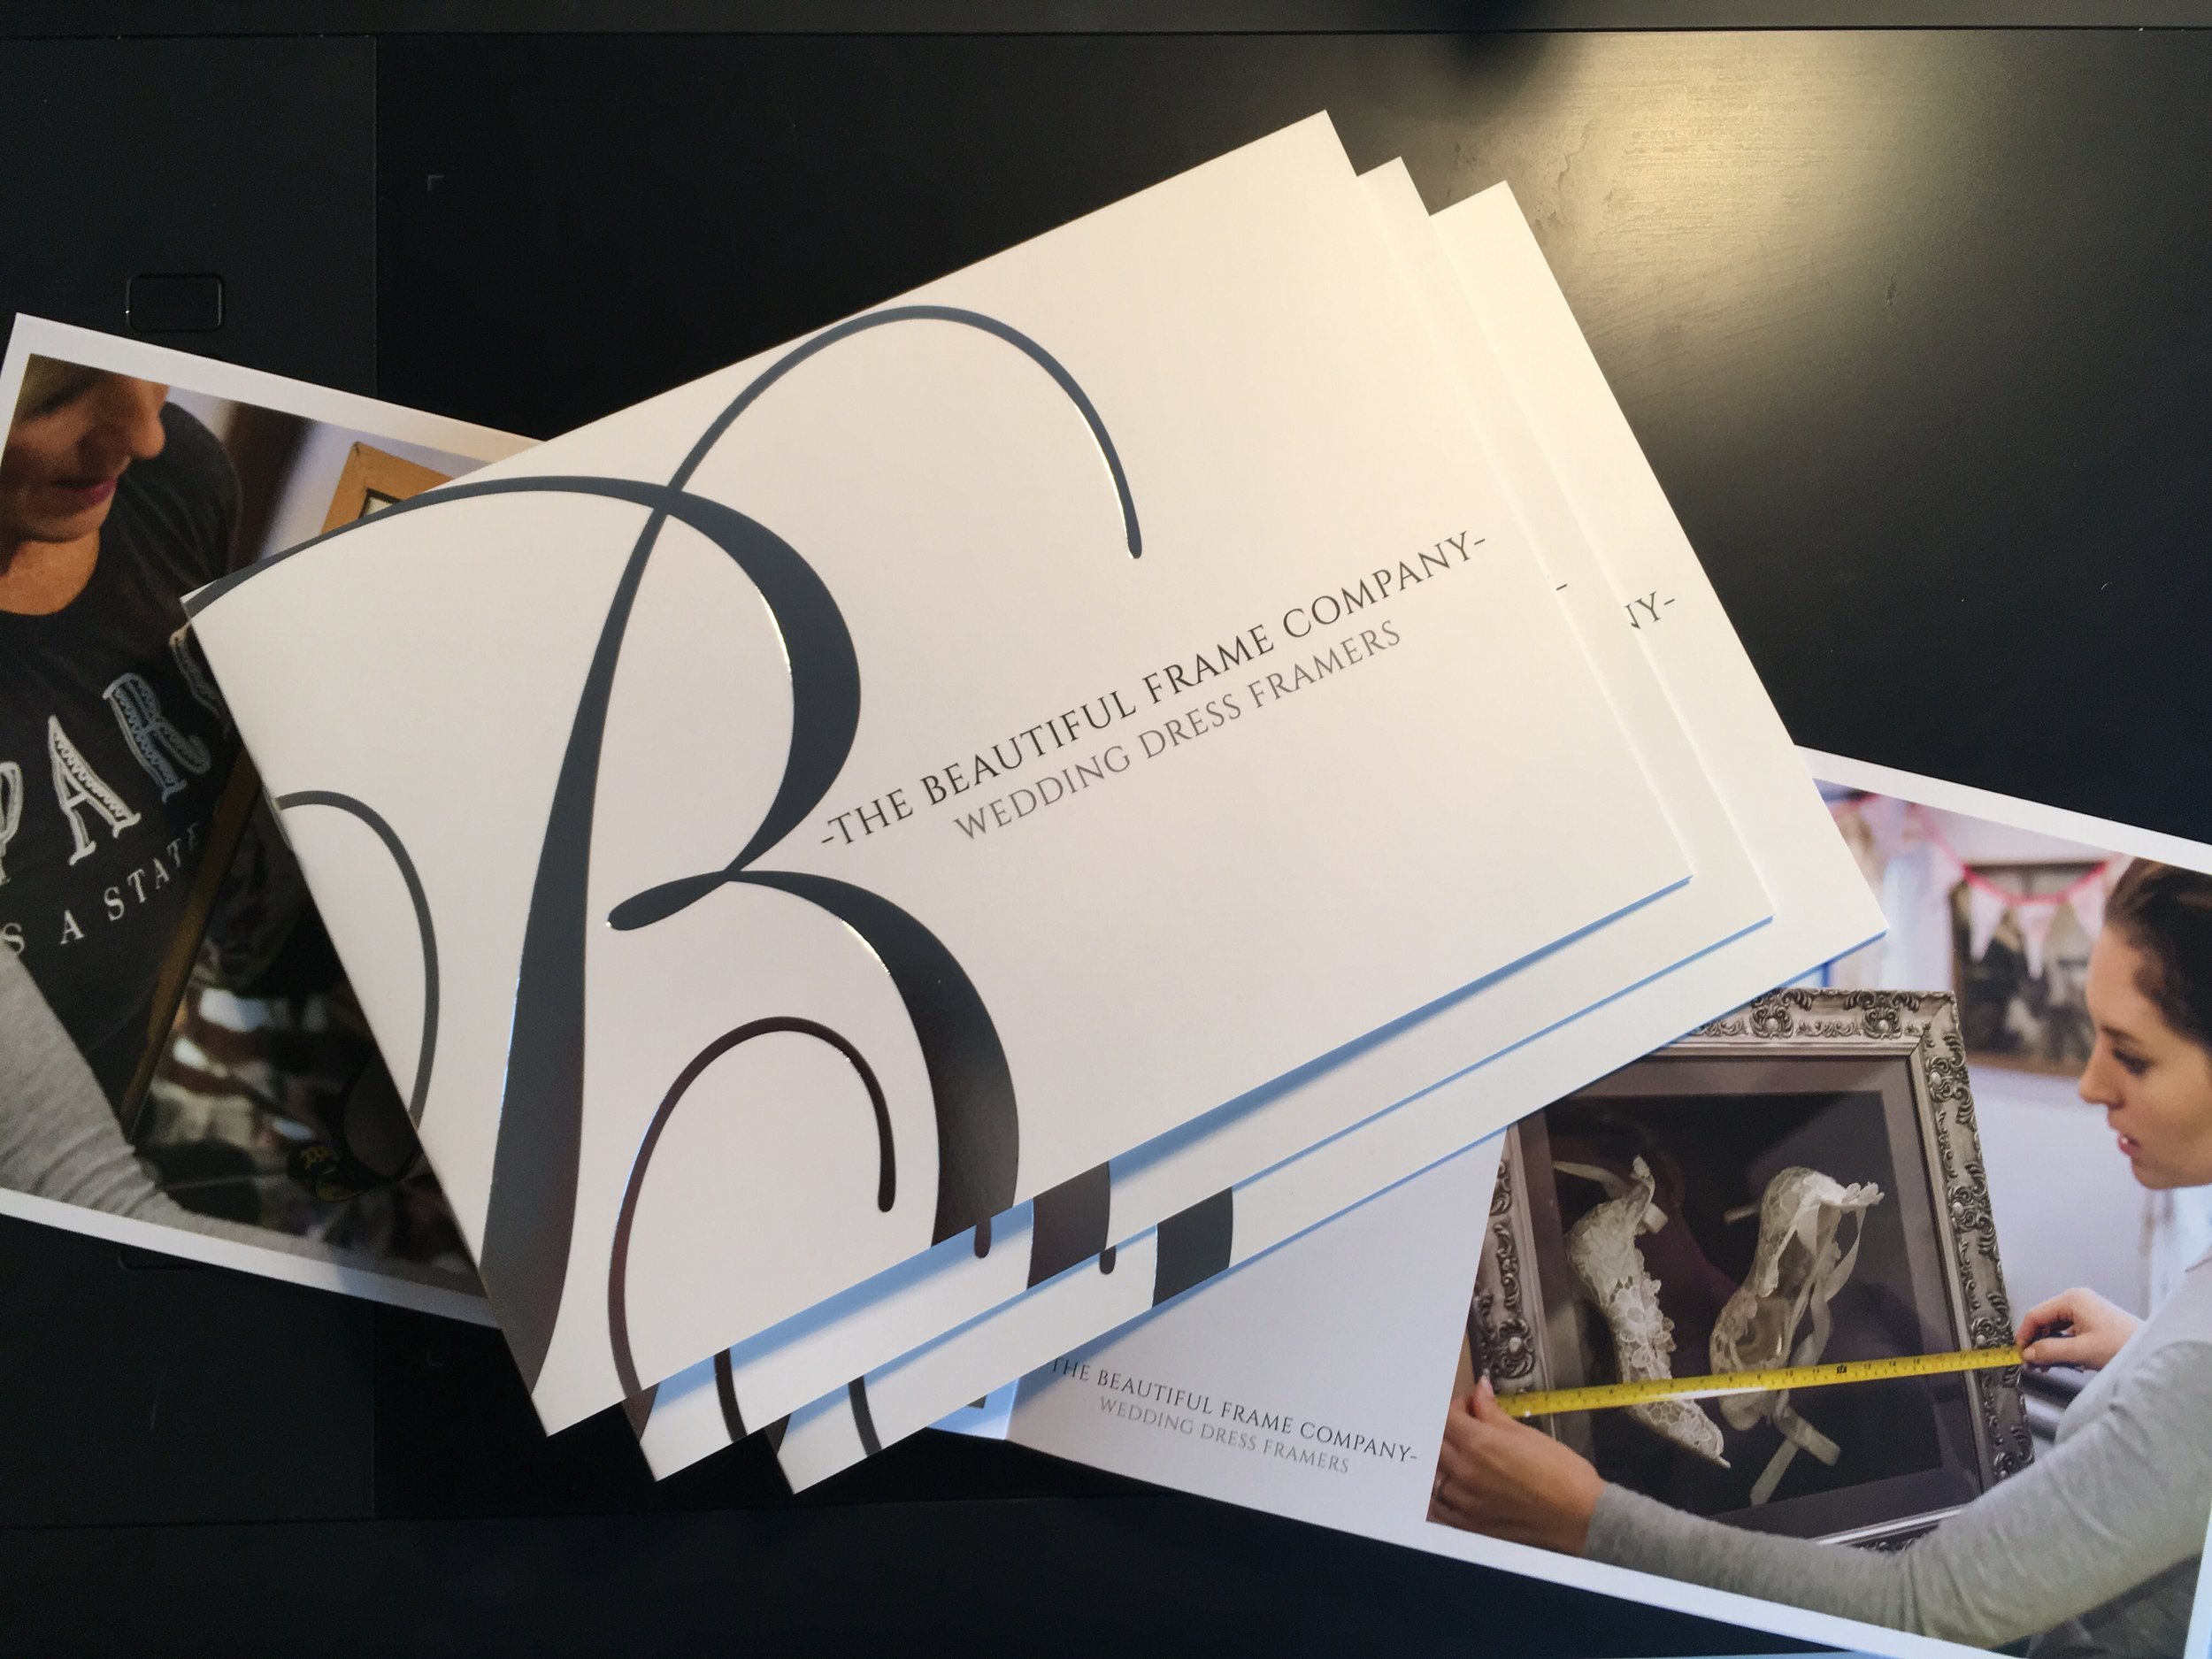 The Beautiful frame Company brochure printed with foil embossing